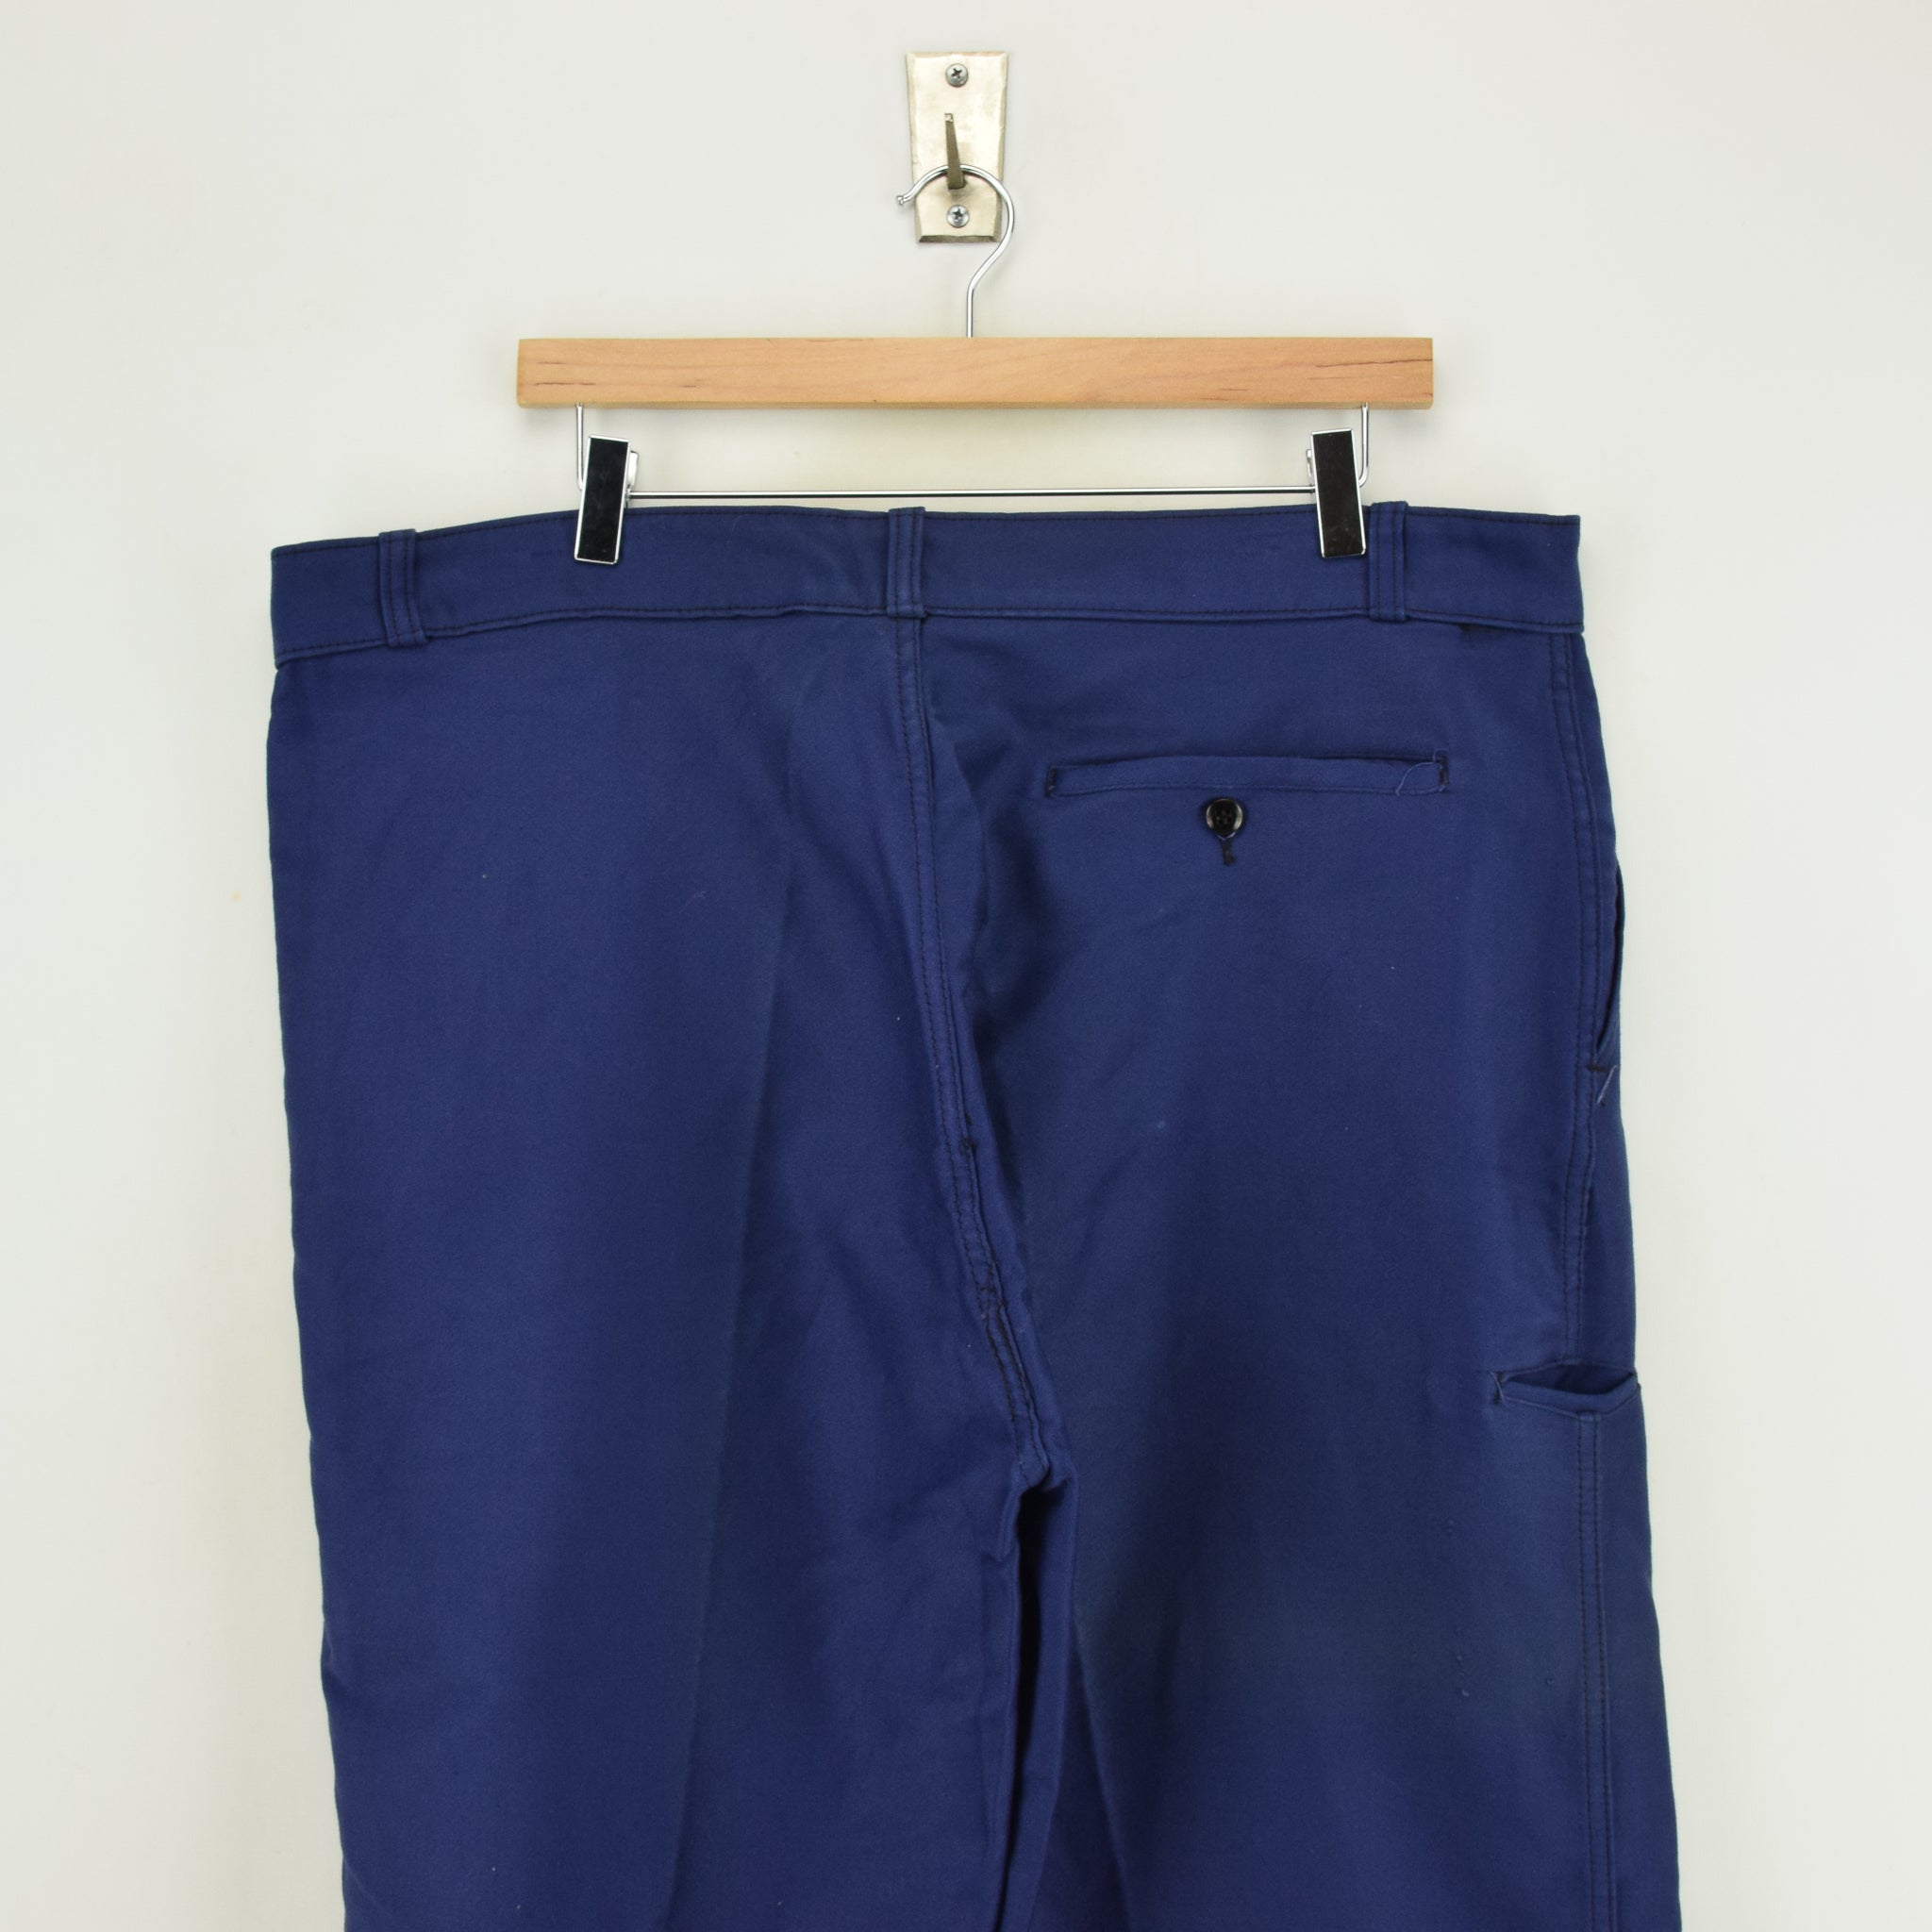 Vintage Adolphe Lafont Workwear Blue French Work Trousers 38 W 32 L back waist